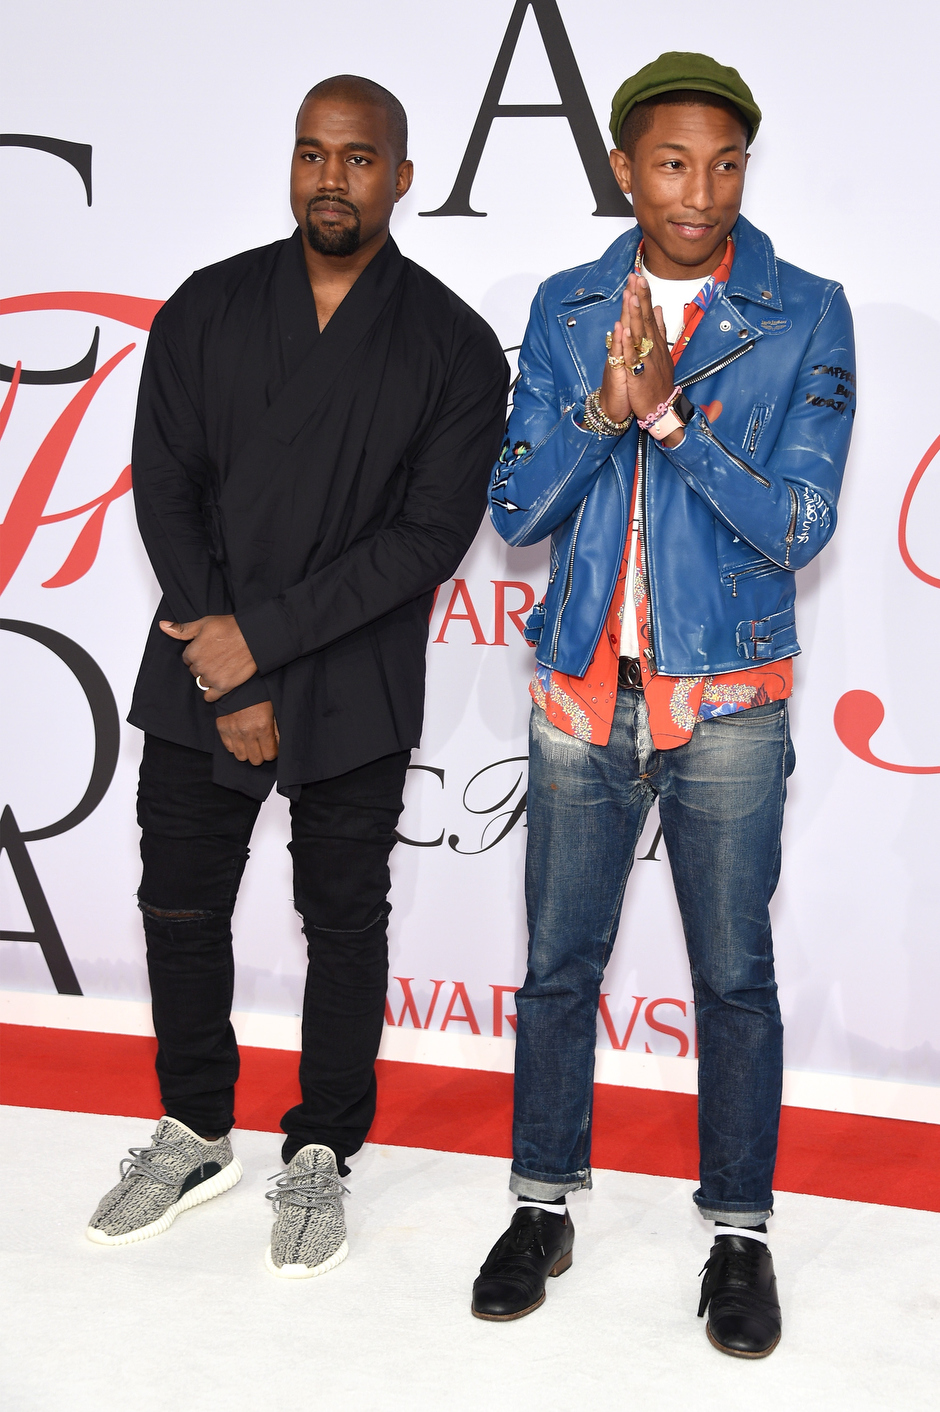 . Kanye West and Pharrell Williams attend the 2015 CFDA Fashion Awards at Alice Tully Hall at Lincoln Center on June 1, 2015 in New York City.  (Photo by Dimitrios Kambouris/Getty Images)